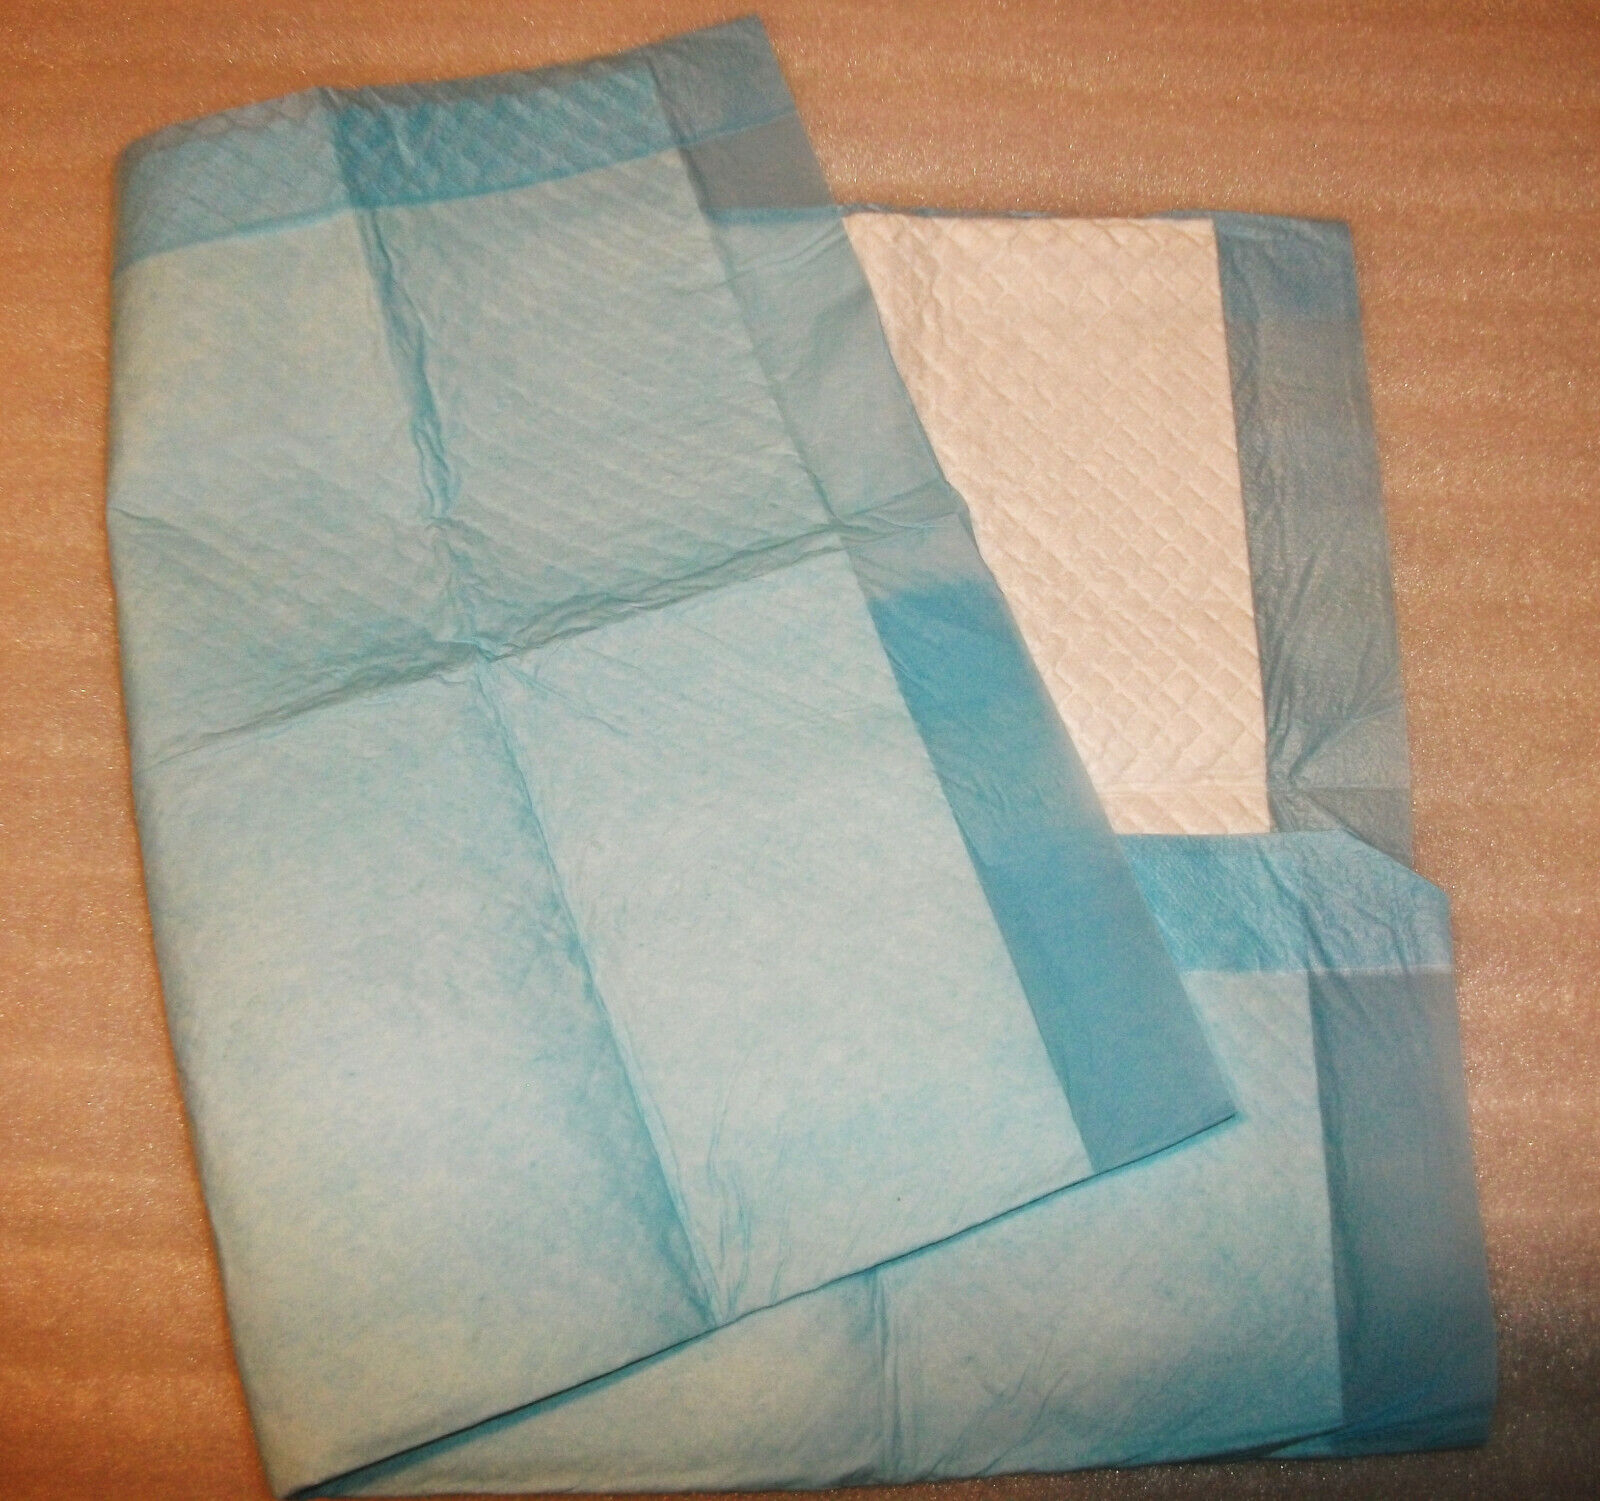 10 CT 22 x21.5 Disposable Pet Puppy Dog Cat Underpad WEE WEE PEE Training Pads  - $6.00